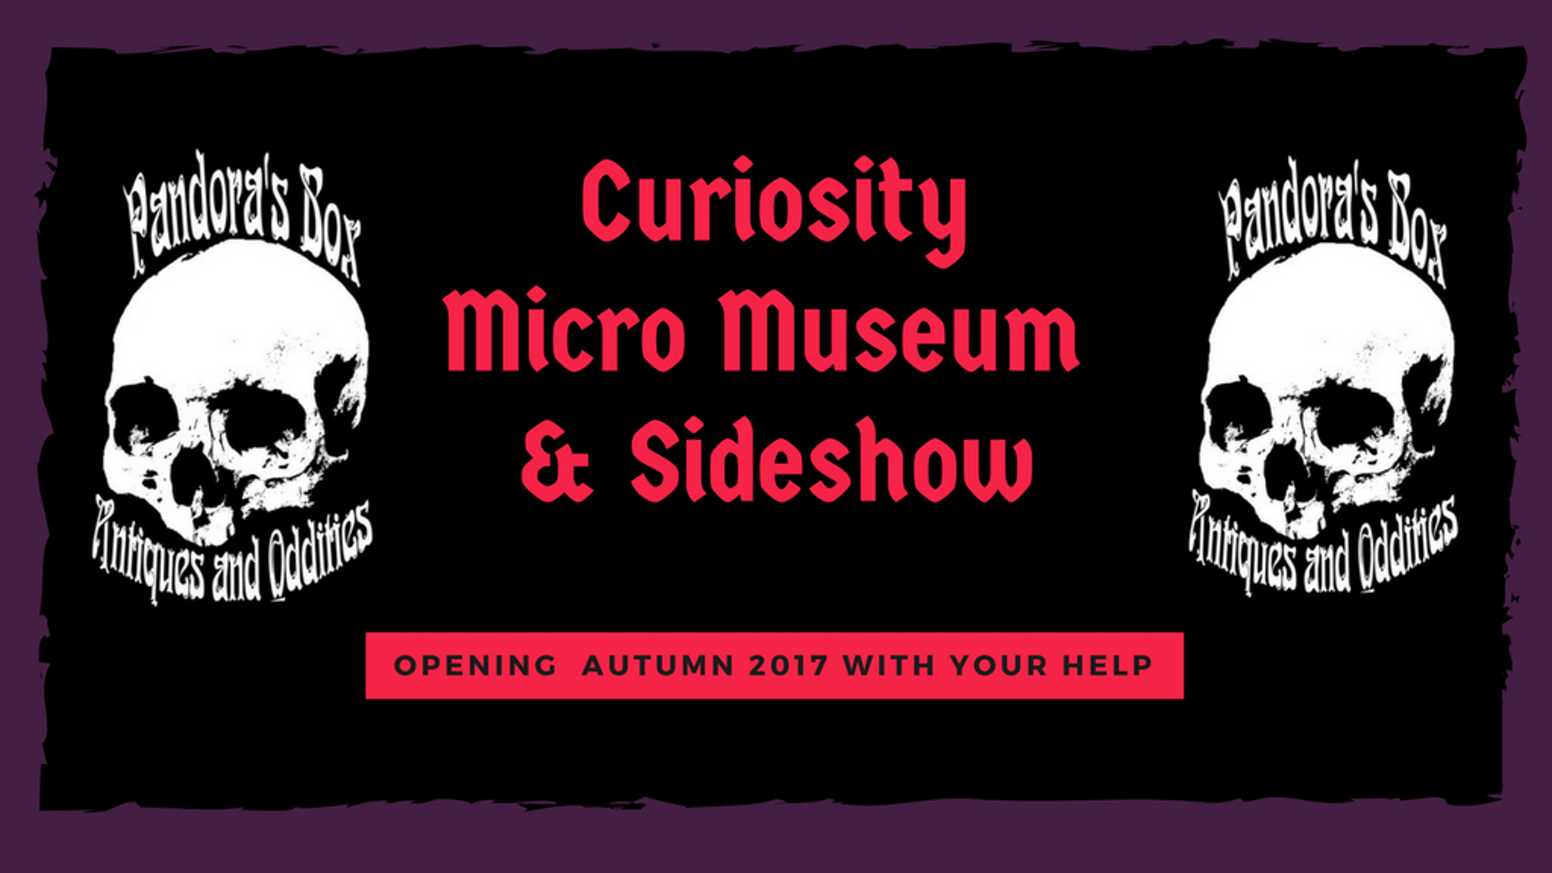 We are taking the permanent collection of curiosities and artefacts that belong to Pandora's Box and making a Micro Museum & Sideshow.